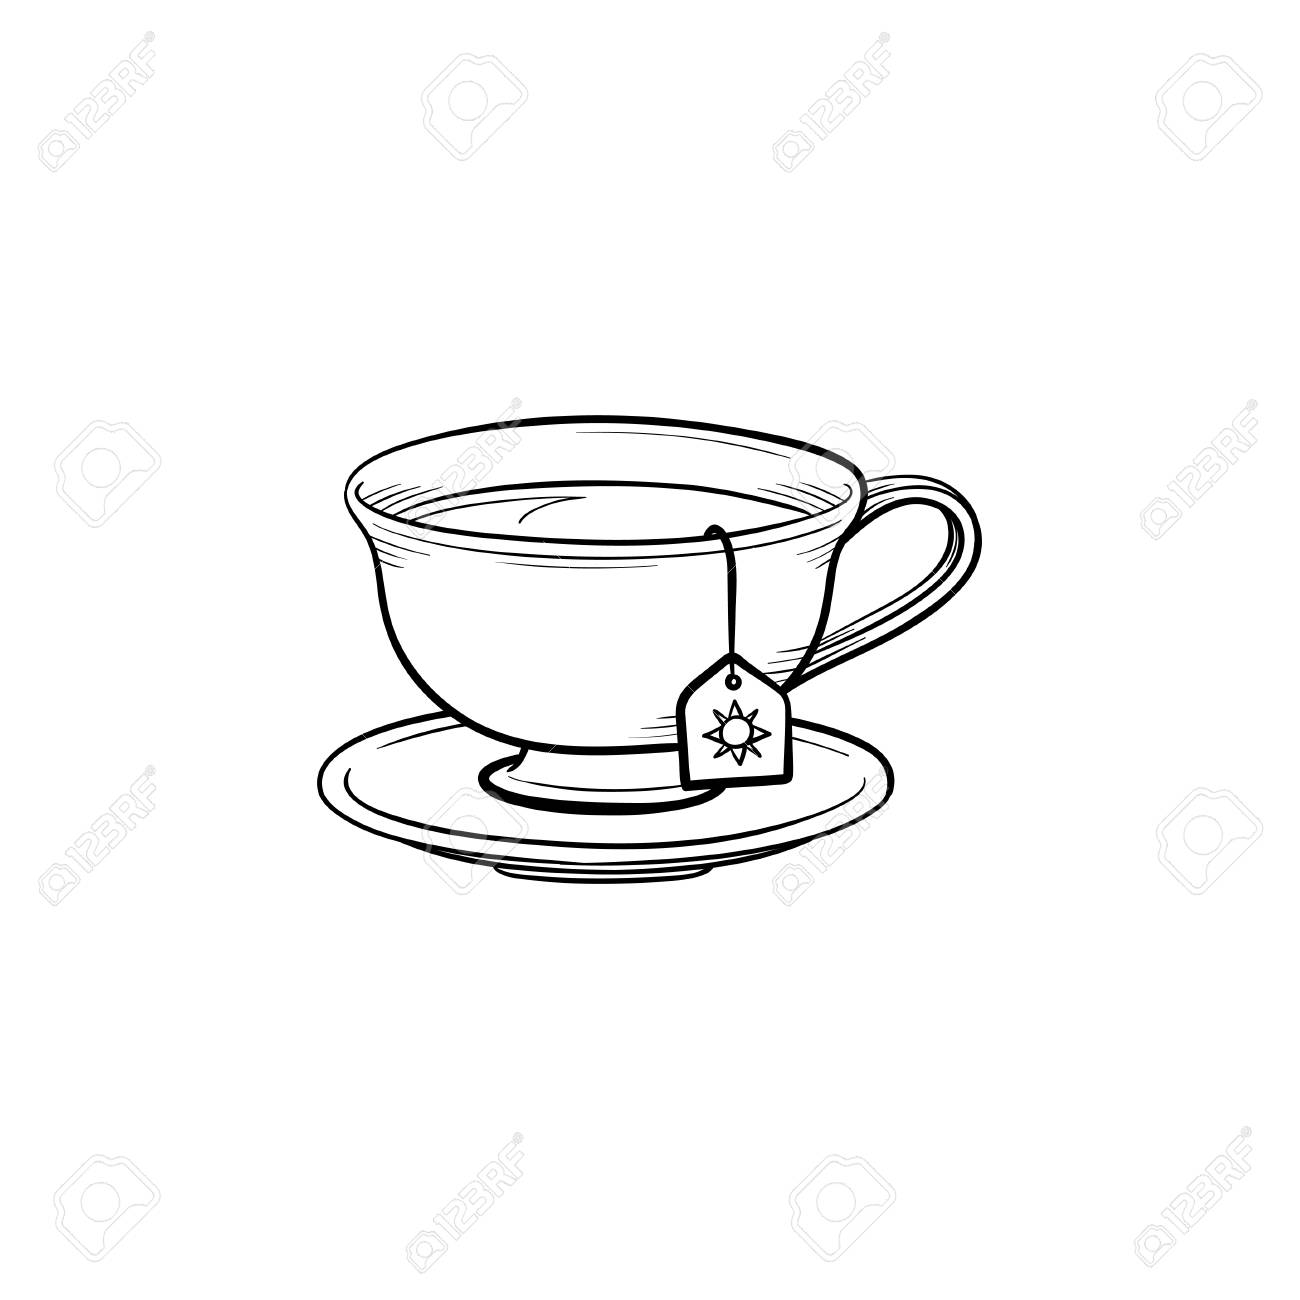 Cup With Tea Bag Hand Drawn Outline Doodle Icon Hot Drink Royalty Free Cliparts Vectors And Stock Illustration Image 97126877